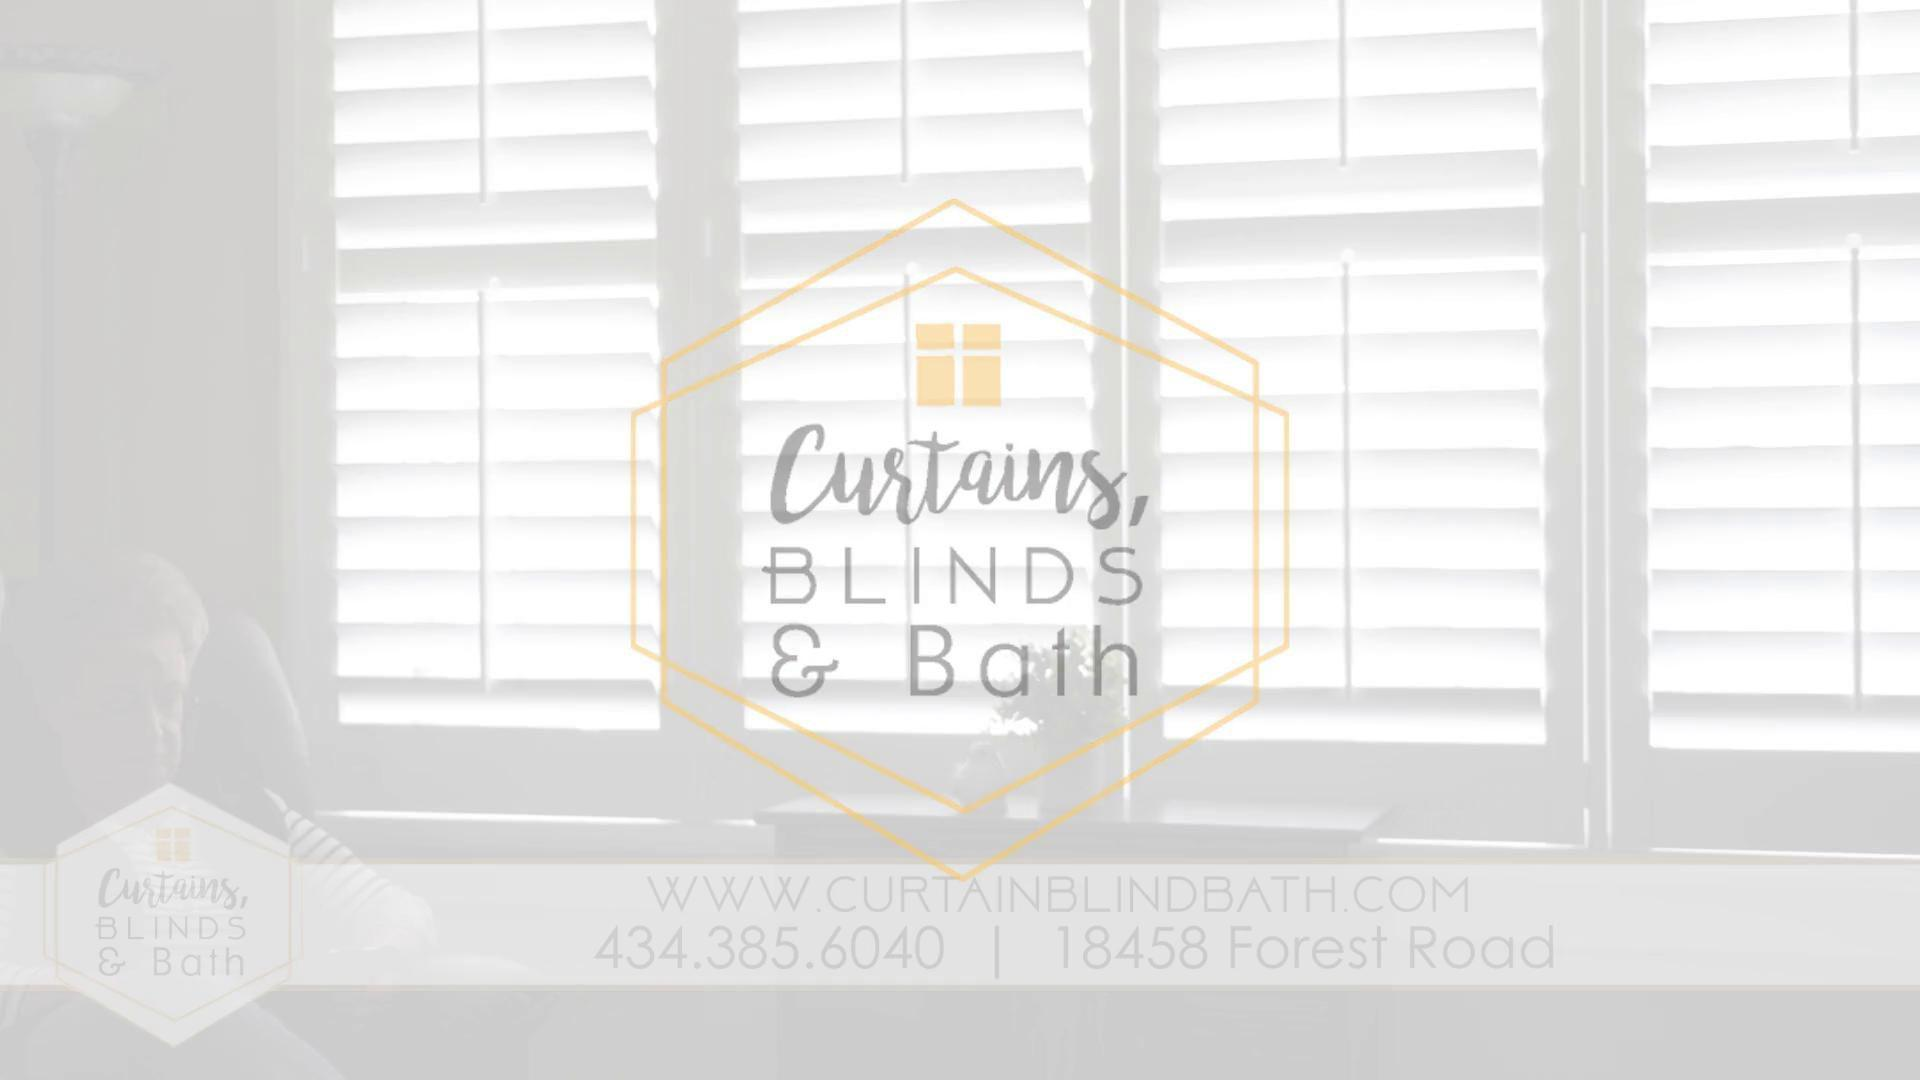 Curtains Blinds & Bath | Blinds | Shades | Forest, VA